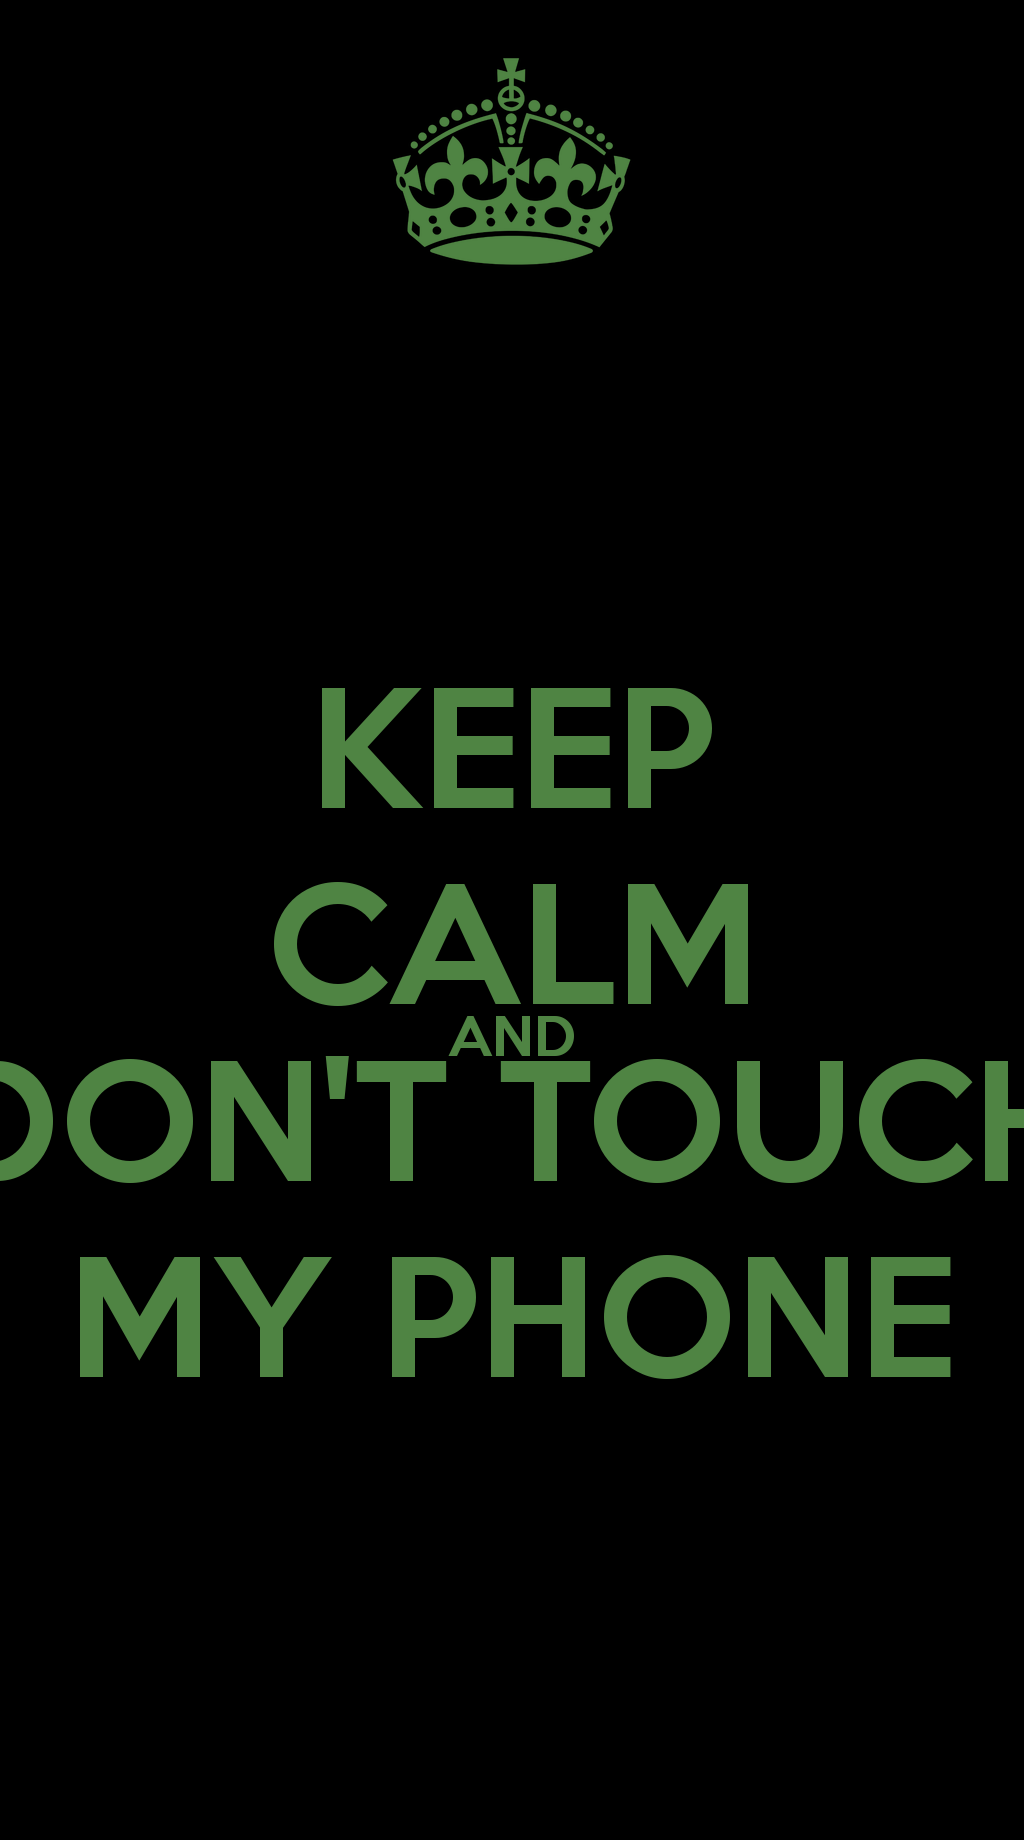 Don t touch my phone wallpaper 9623 wallpapers don t touch my phone 1024x1840